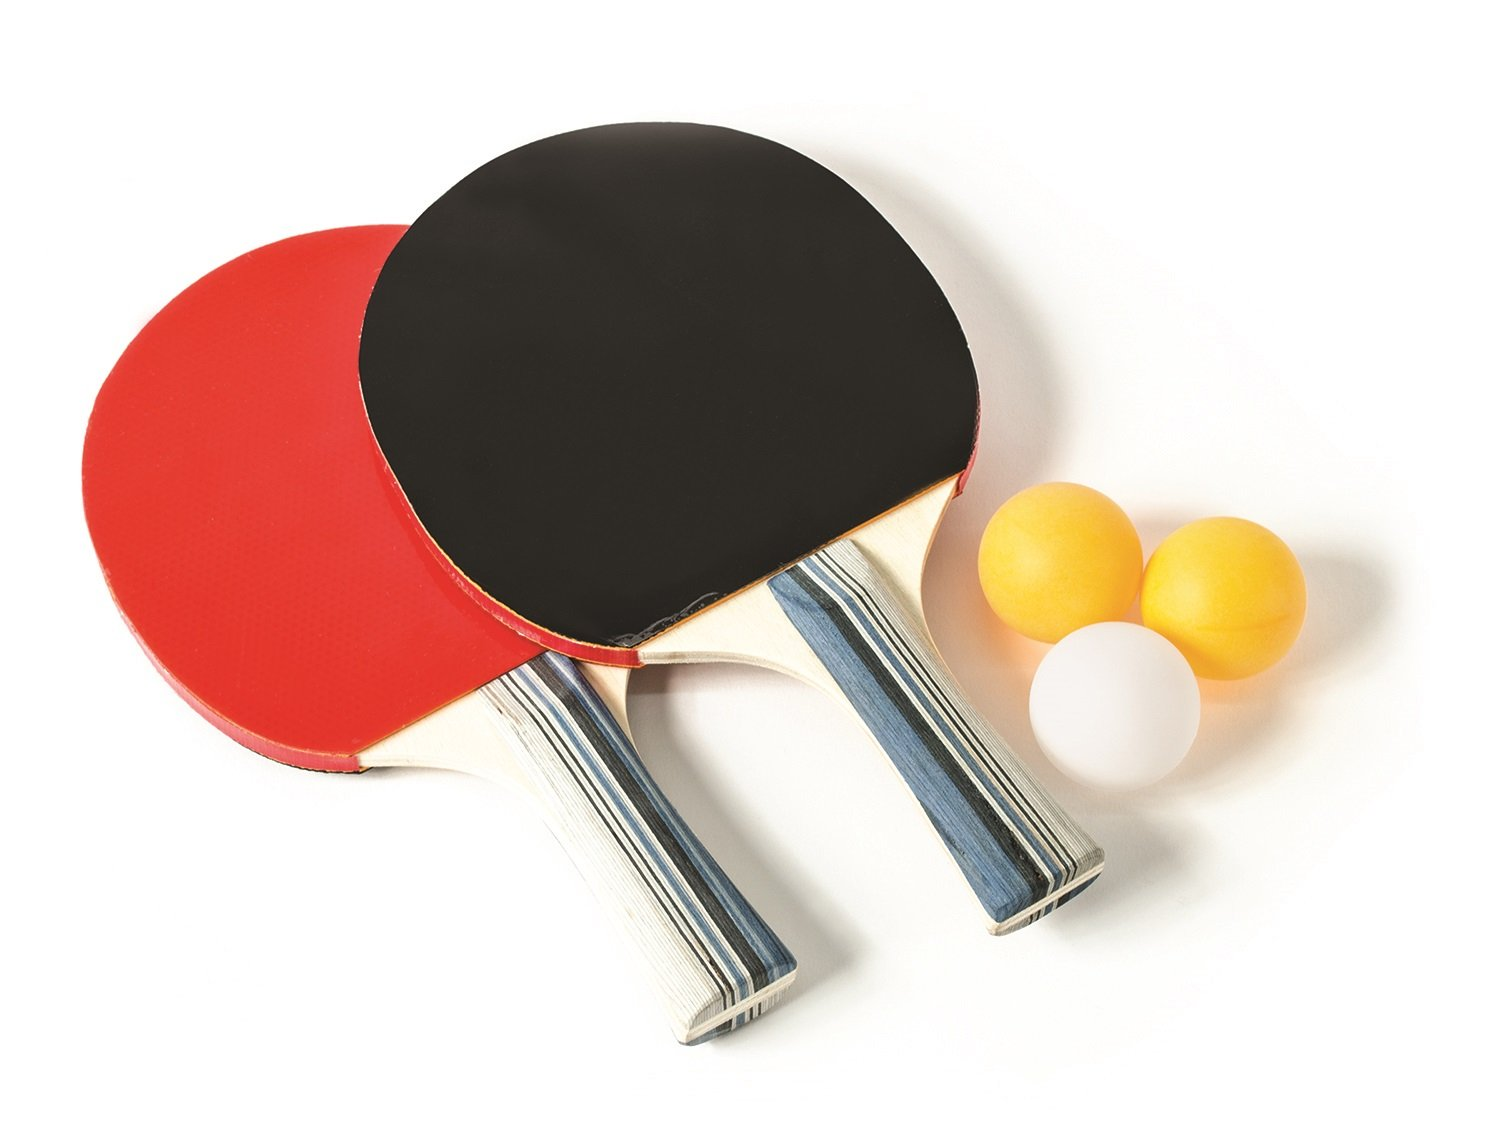 Laser Sports Novelty Ping Pong Balls & Paddles - For Friendly Competition (2 Player Set)